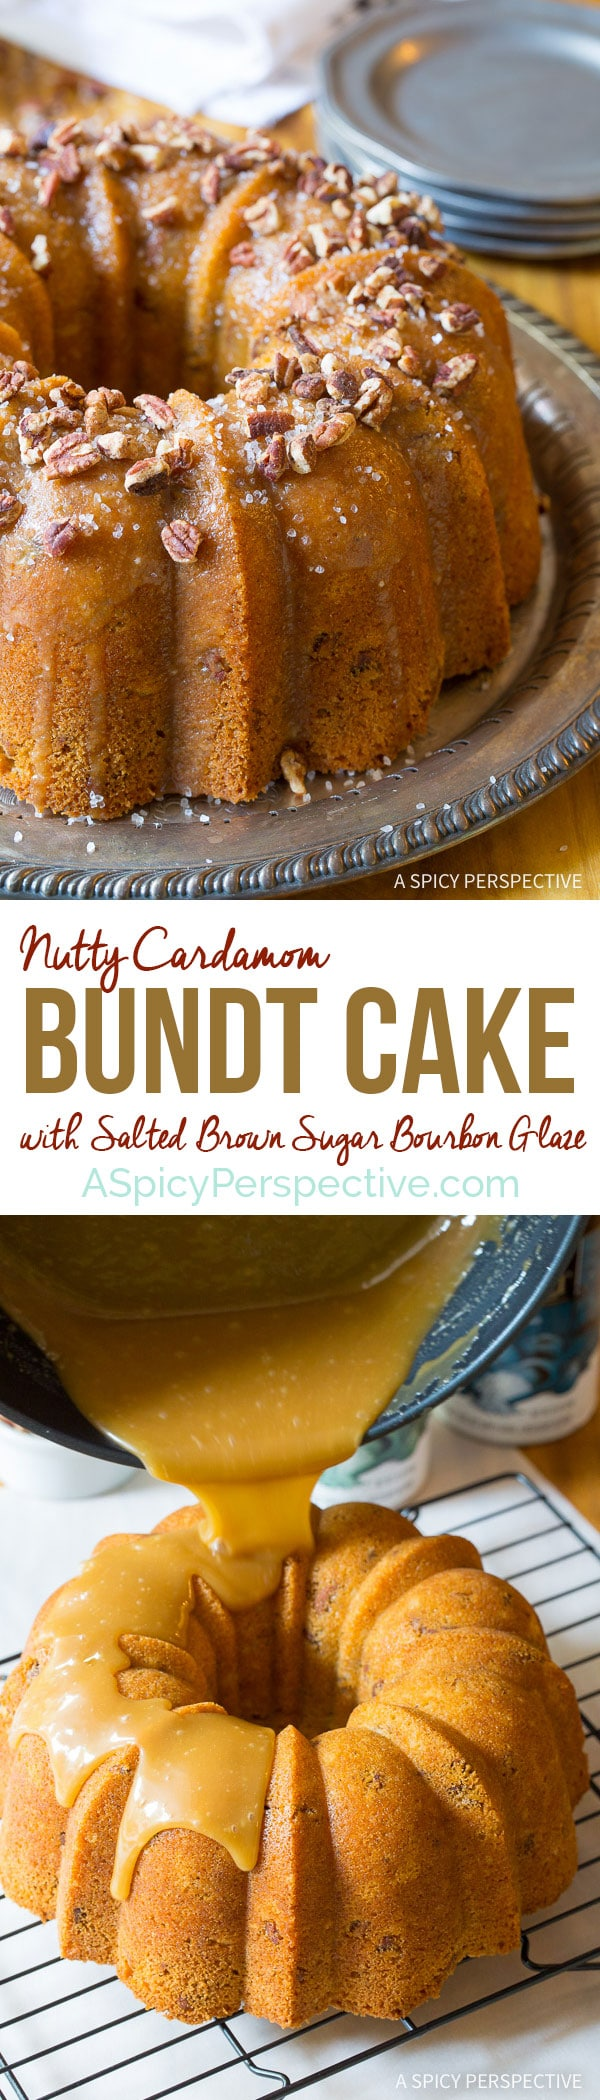 ... Nutty Cardamom Bundt Cake with Bourbon Glaze on ASpicyPerspective.com